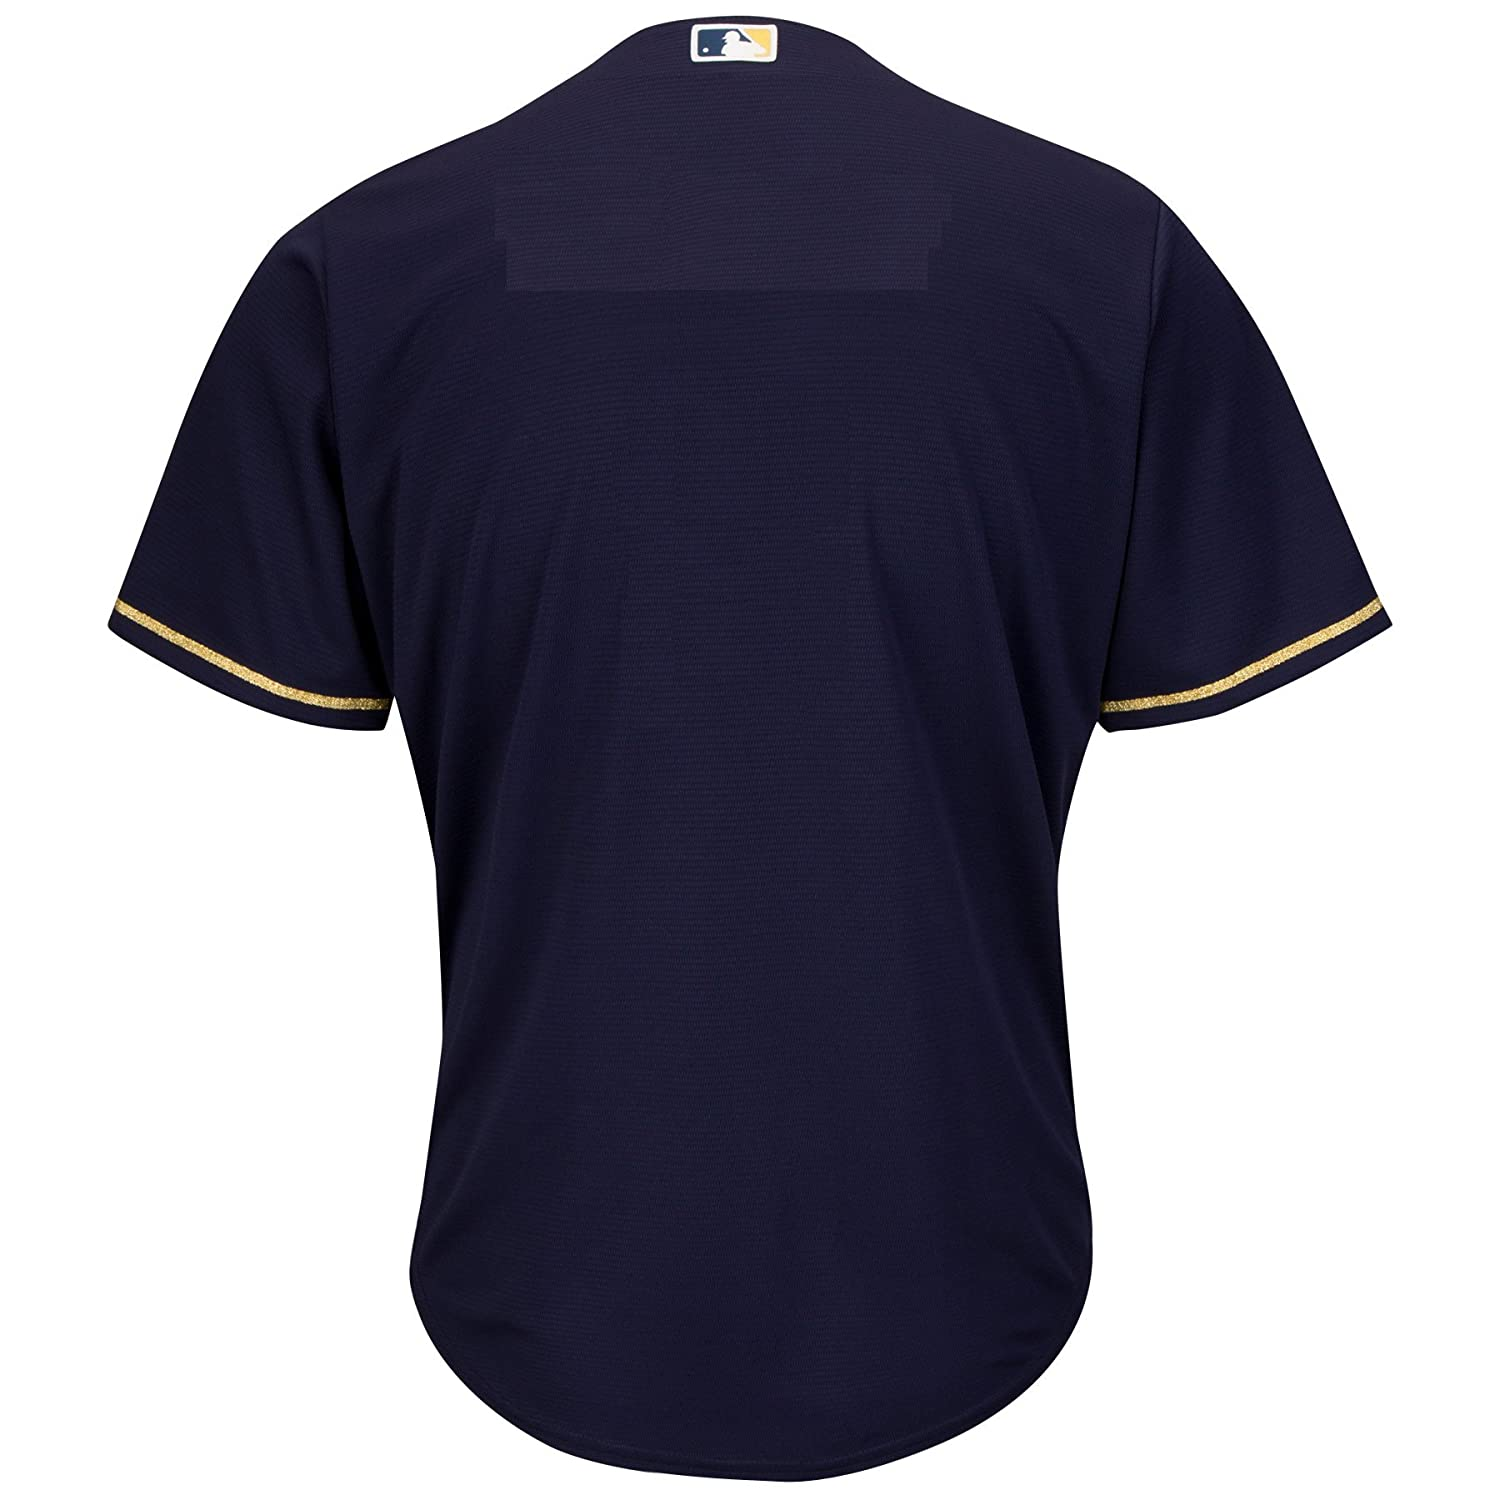 173dd55caf3 Amazon.com : Milwaukee Brewers Youth Cool Base Alternate Team Jersey Navy ( Youth Large 14/16) : Clothing